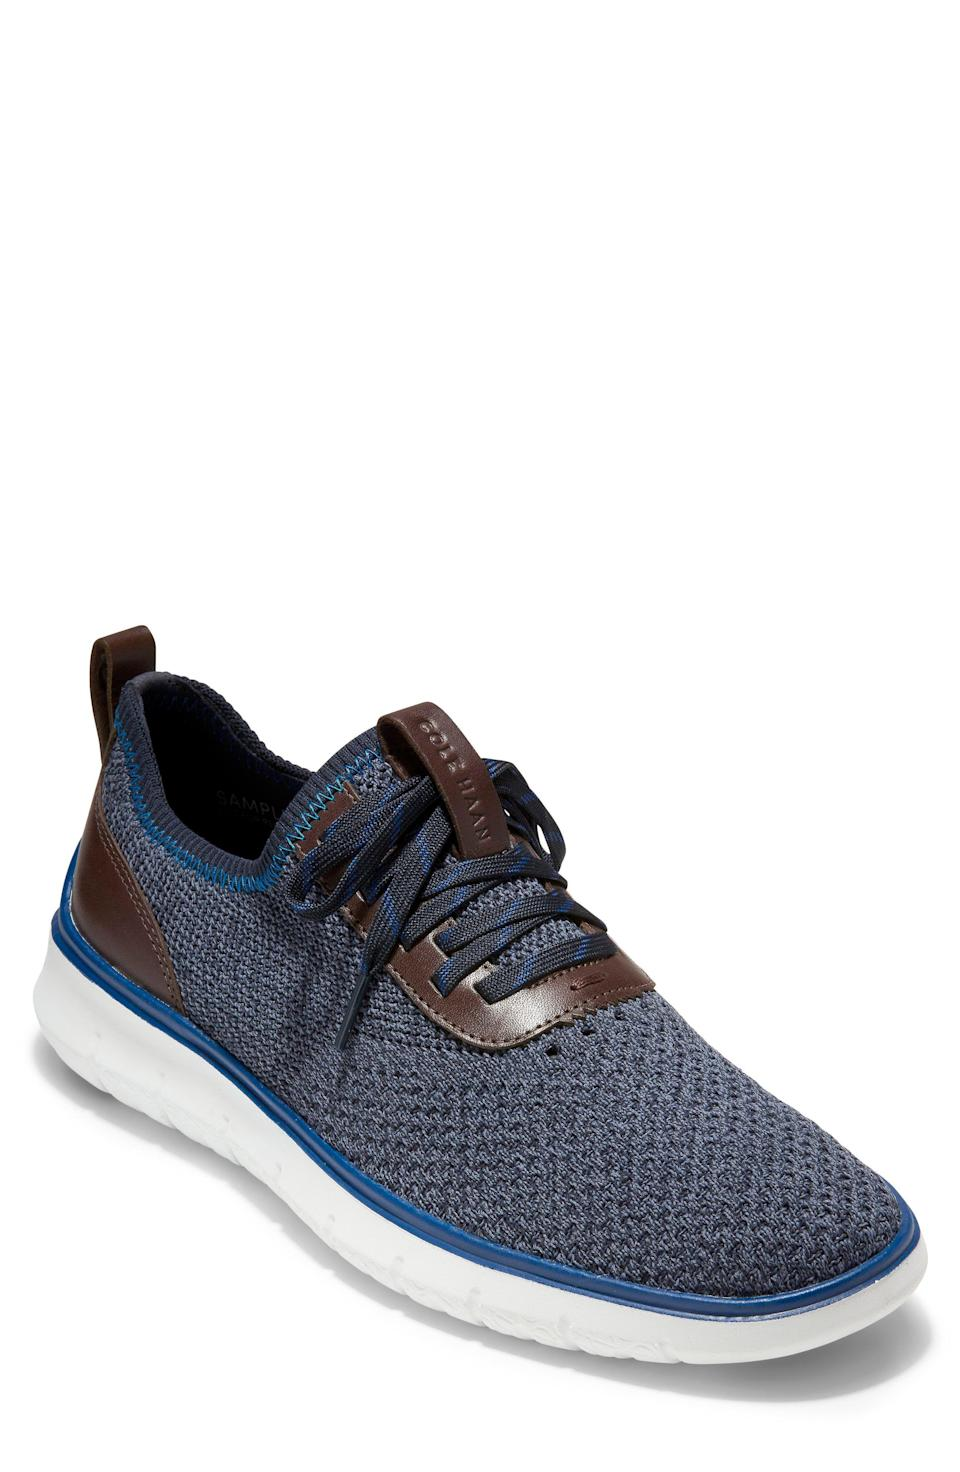 """<p><strong>COLE HAAN</strong></p><p>nordstrom.com</p><p><a href=""""https://go.redirectingat.com?id=74968X1596630&url=https%3A%2F%2Fwww.nordstrom.com%2Fs%2Fcole-haan-generation-zerogrand-stitchlite-sneaker-men%2F5266591&sref=https%3A%2F%2Fwww.esquire.com%2Fstyle%2Fmens-fashion%2Fg37002225%2Fnordstrom-anniversary-sale-mens-fashion-deals-2021%2F"""" rel=""""nofollow noopener"""" target=""""_blank"""" data-ylk=""""slk:Shop Now"""" class=""""link rapid-noclick-resp"""">Shop Now</a></p><p><strong>Sale: </strong><strong>$66.90</strong></p><p><strong>After Sale: $100.00</strong></p><p>The ZeroGrand will take you from, well, zero to hero—just like that. </p>"""